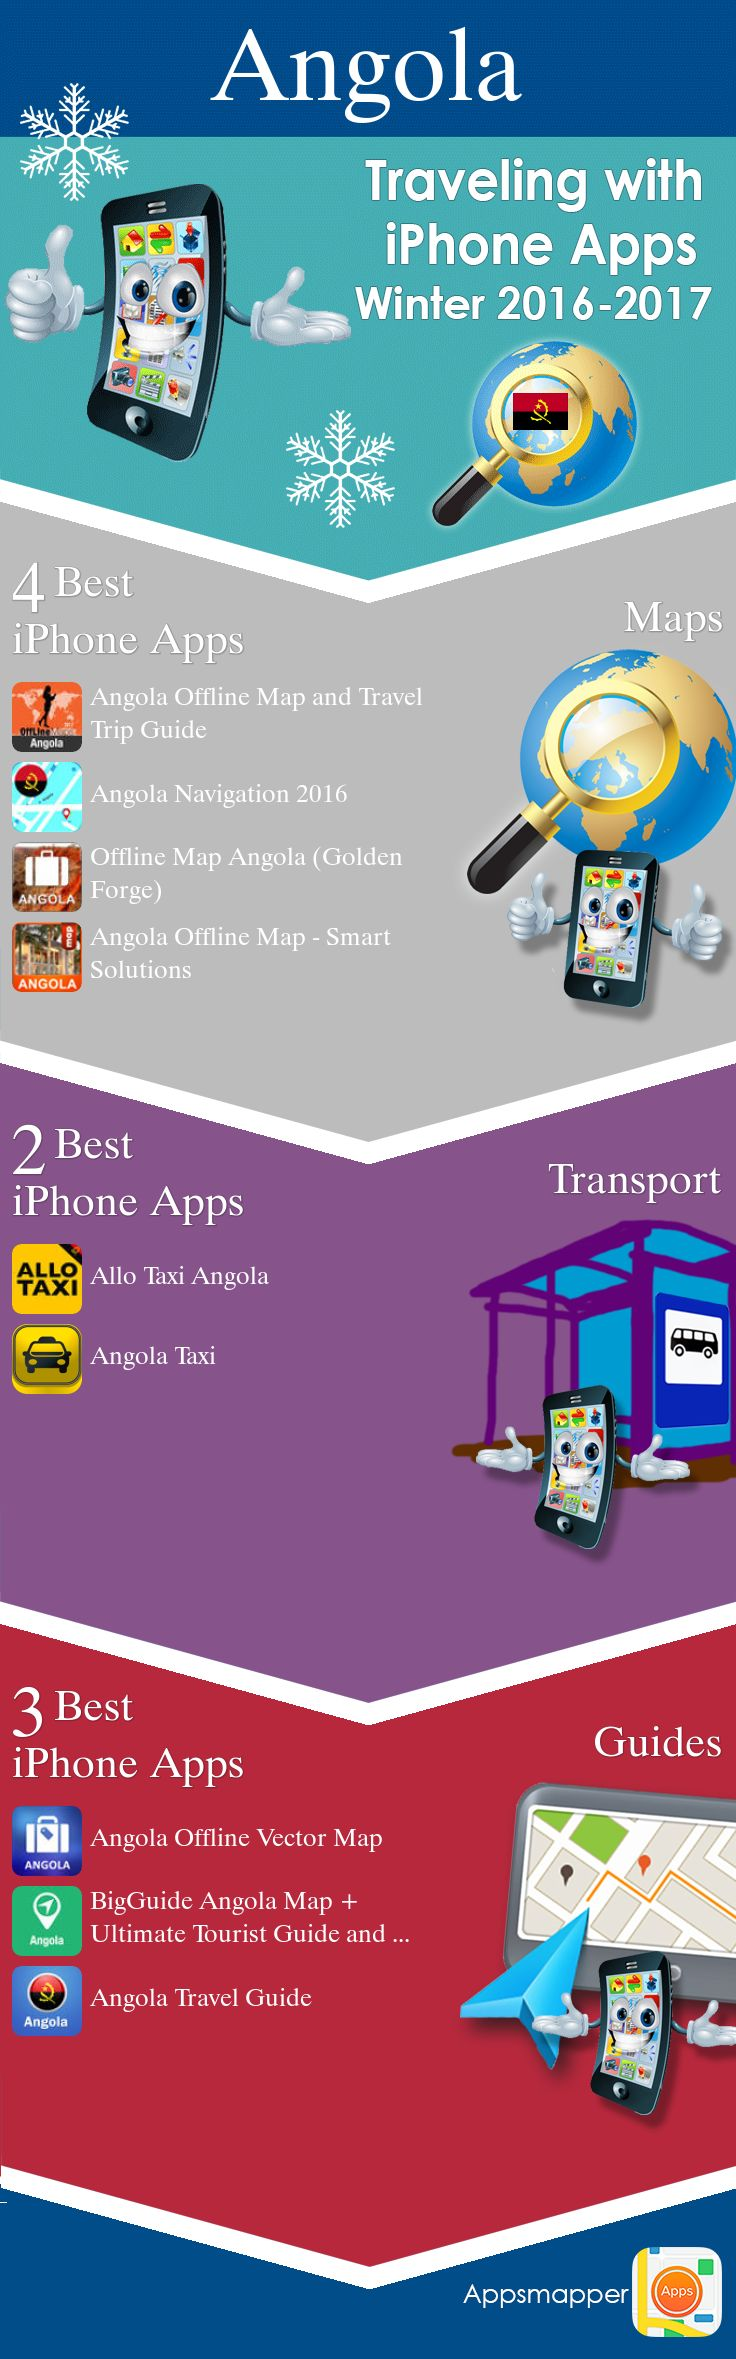 Angola iPhone apps: Travel Guides, Maps, Transportation, Biking, Museums, Parking, Sport and apps for Students.